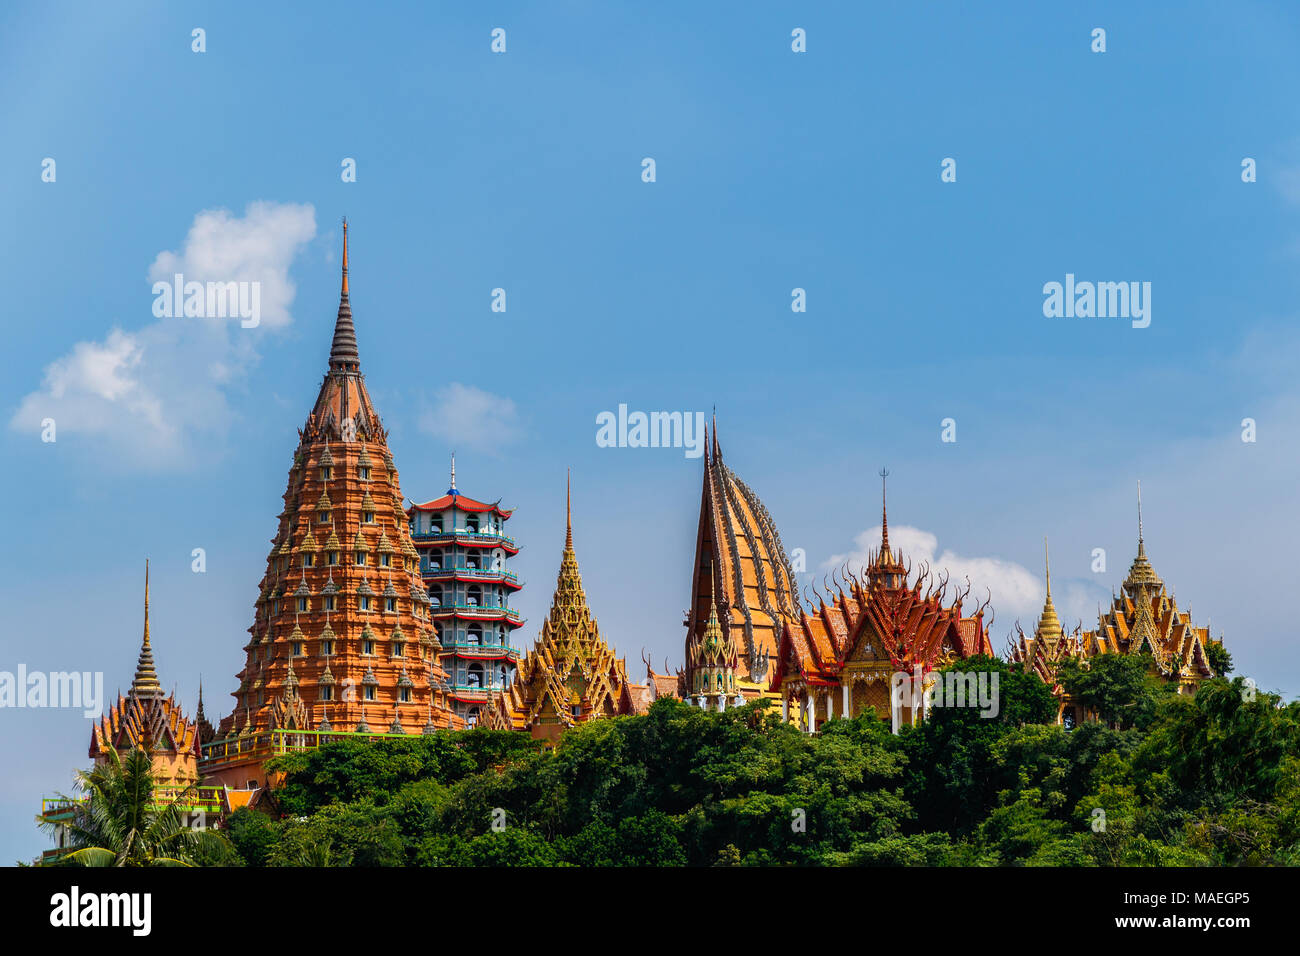 The Temple of Wat Tham Sua on a hilltop just outside of Kanchanaburi, Thailand. - Stock Image